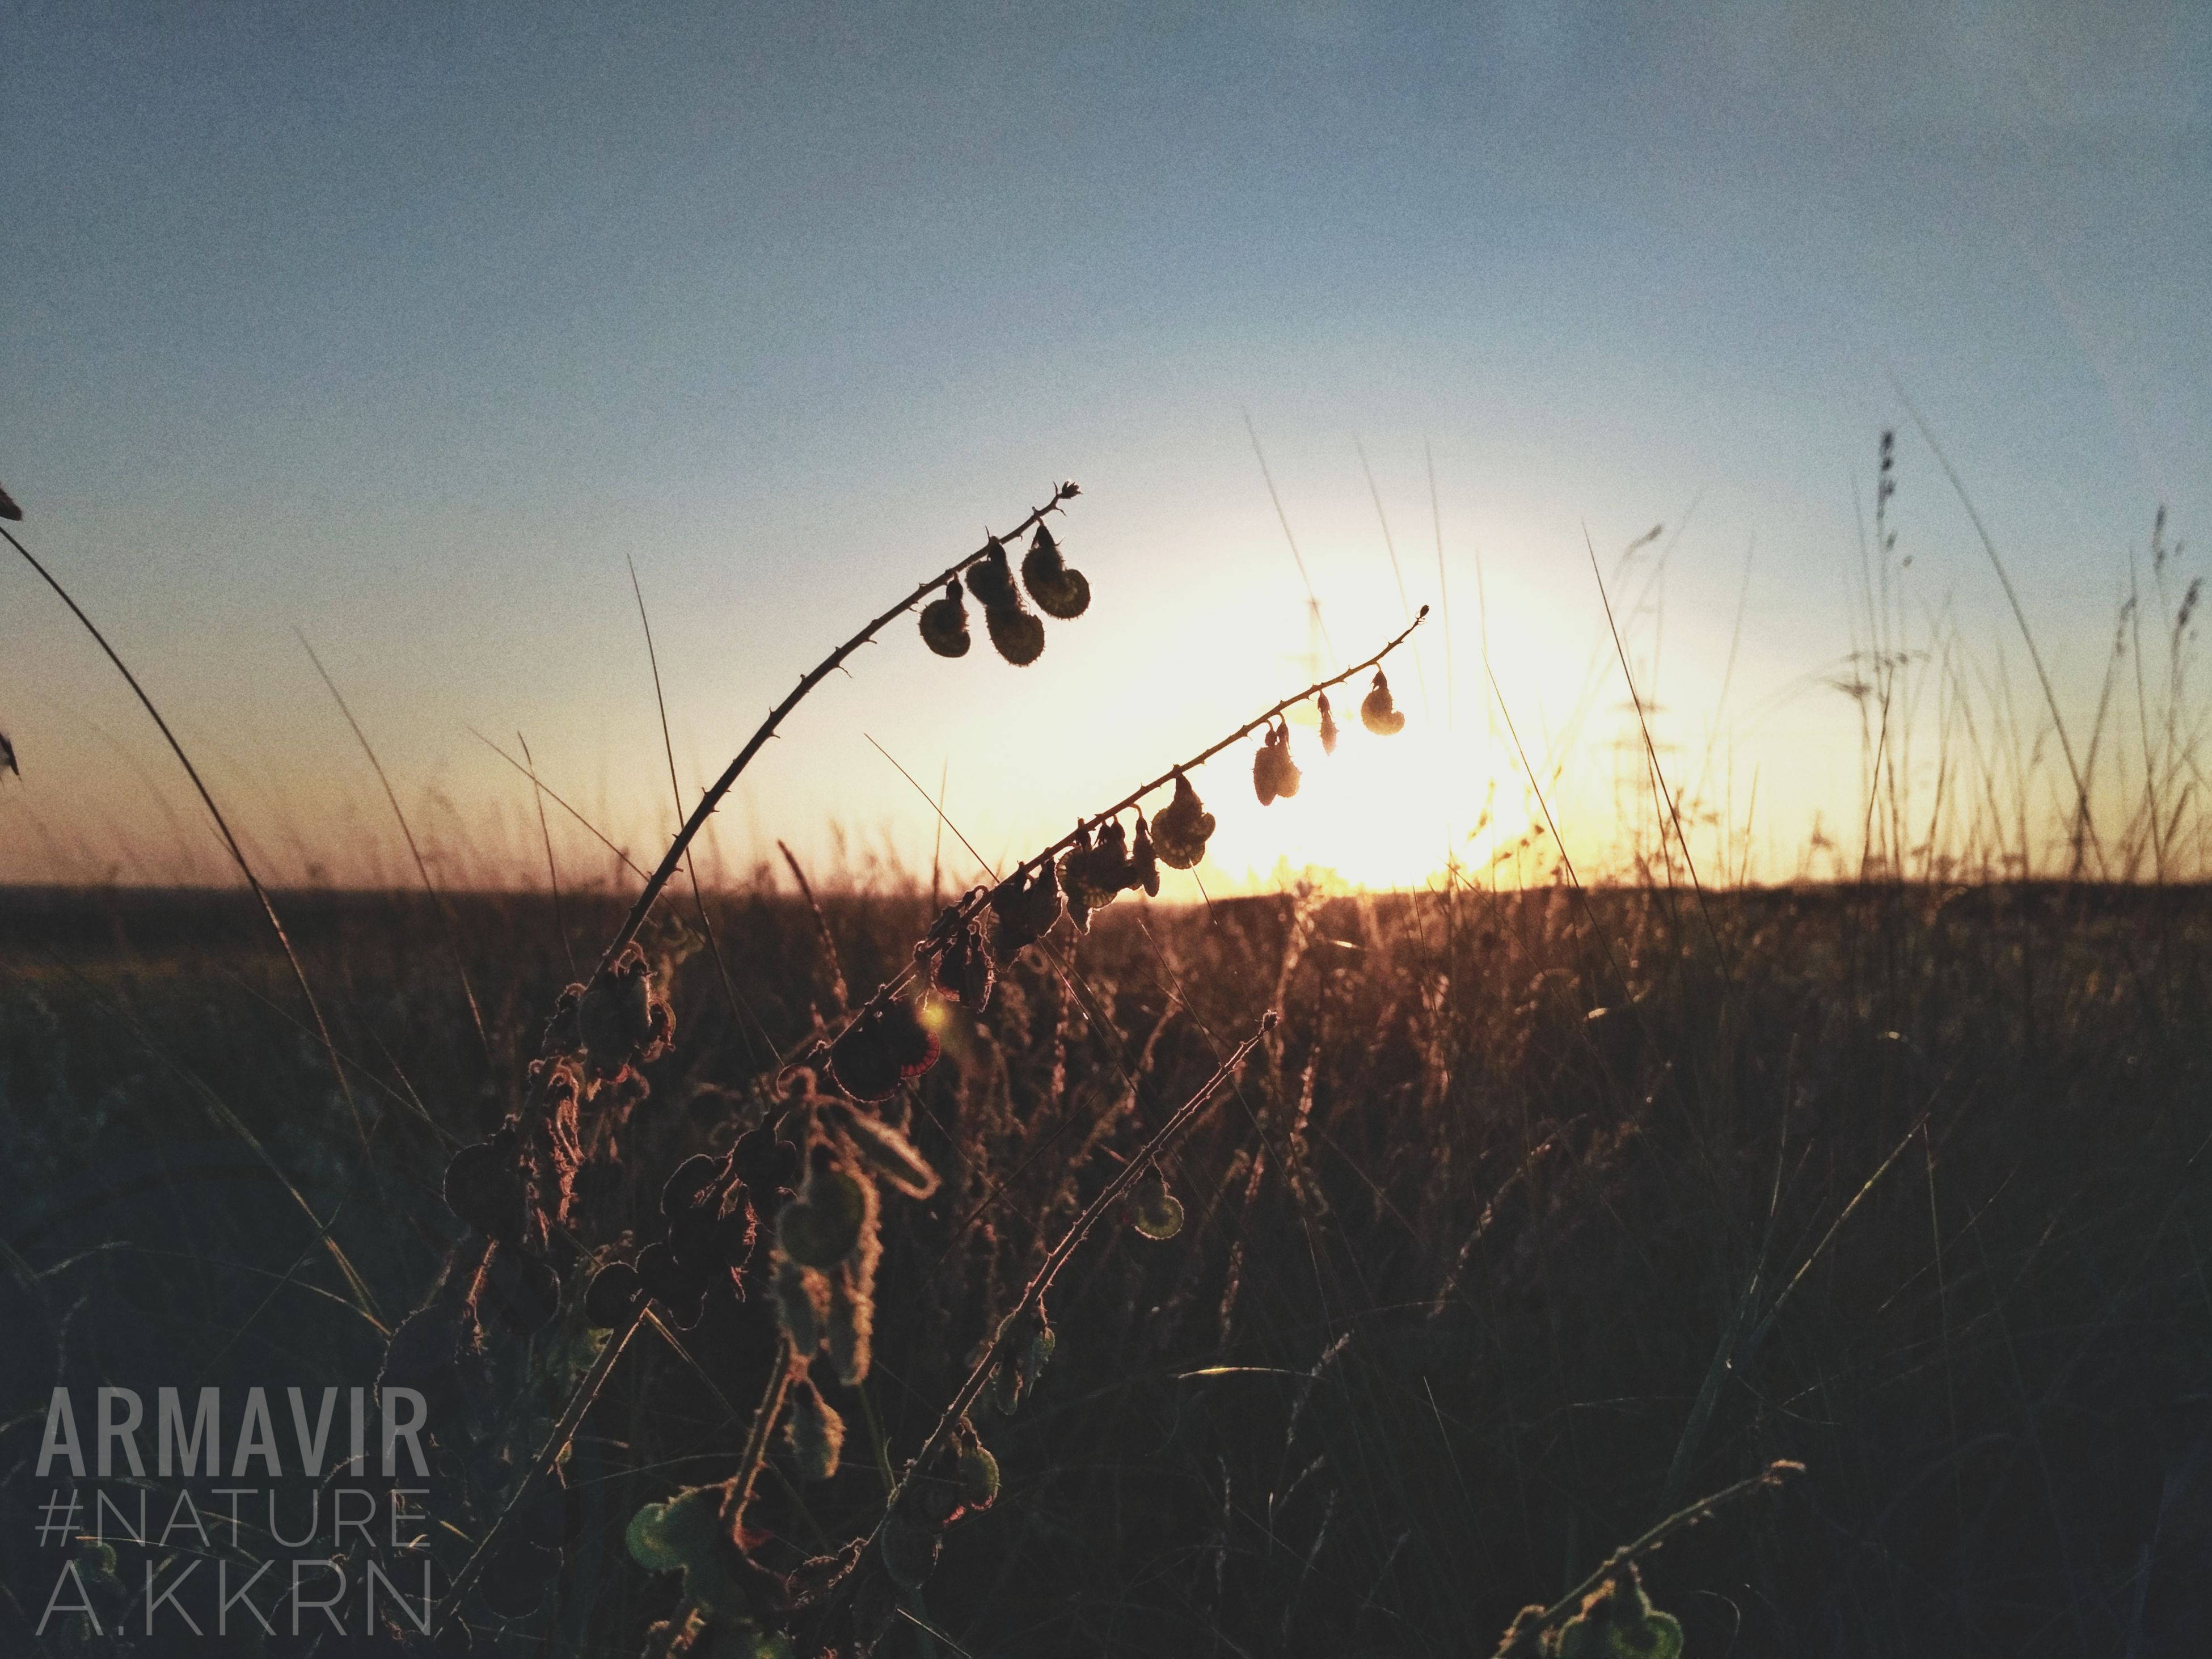 growth, sunset, plant, field, crop, agriculture, nature, farm, grass, outdoors, no people, rural scene, cereal plant, beauty in nature, sky, wheat, landscape, scenics, day, close-up